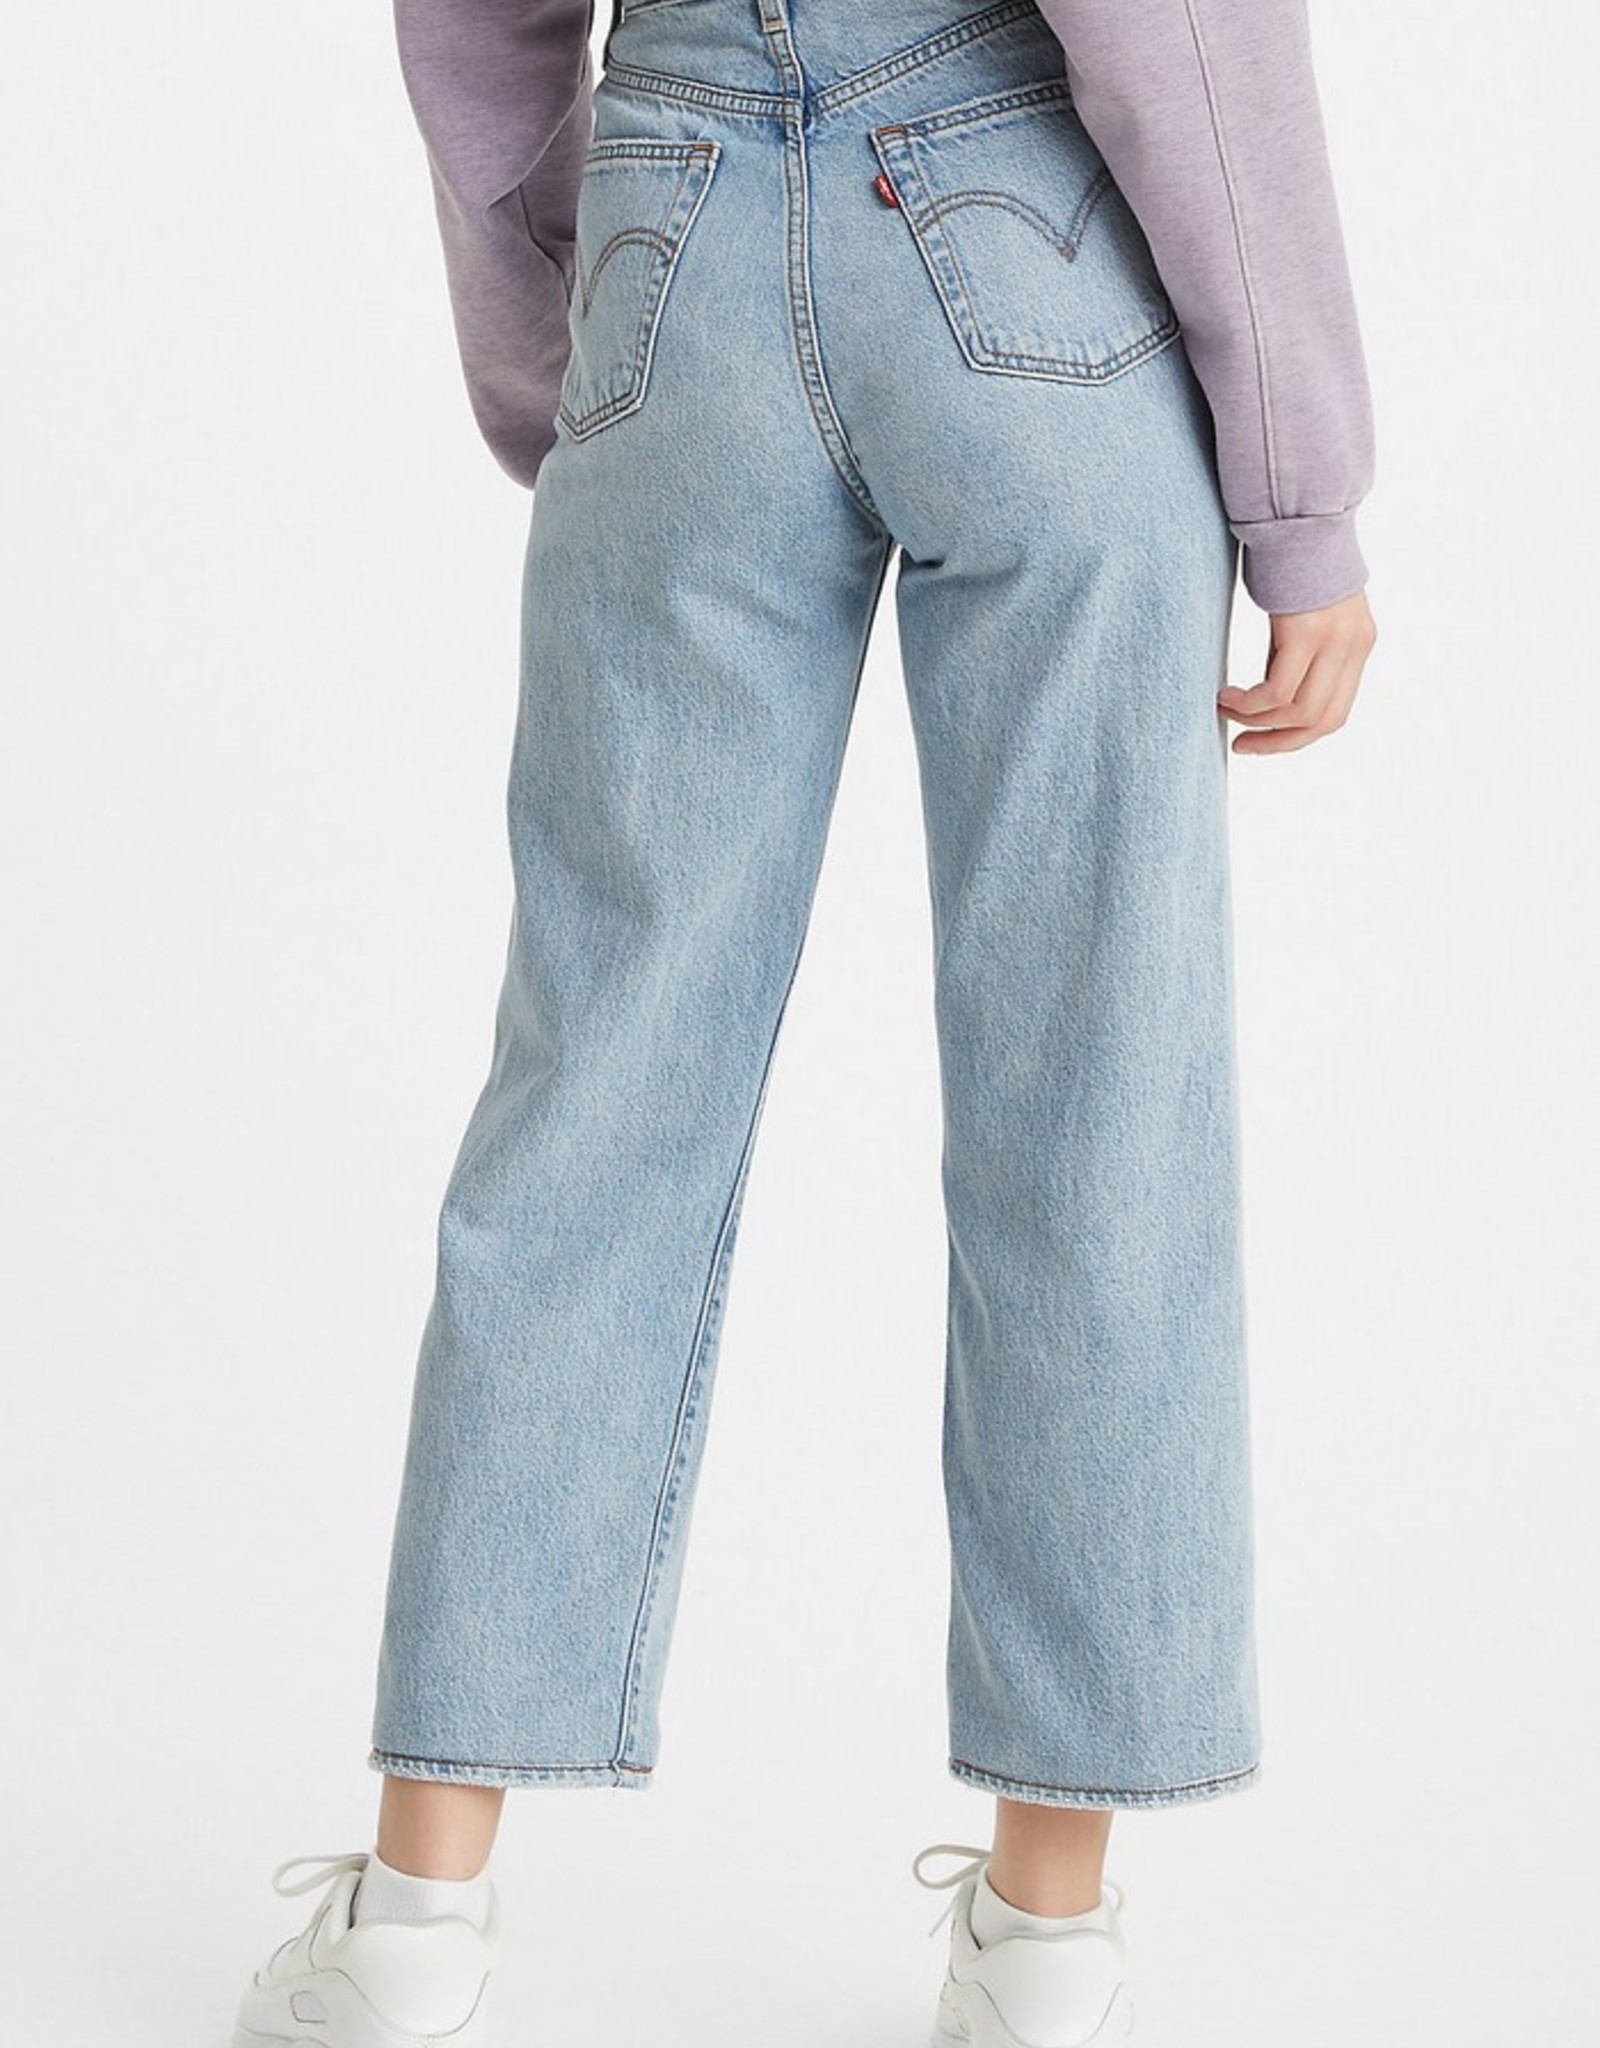 Levi's Ribcage Straight Ankle Middle Road